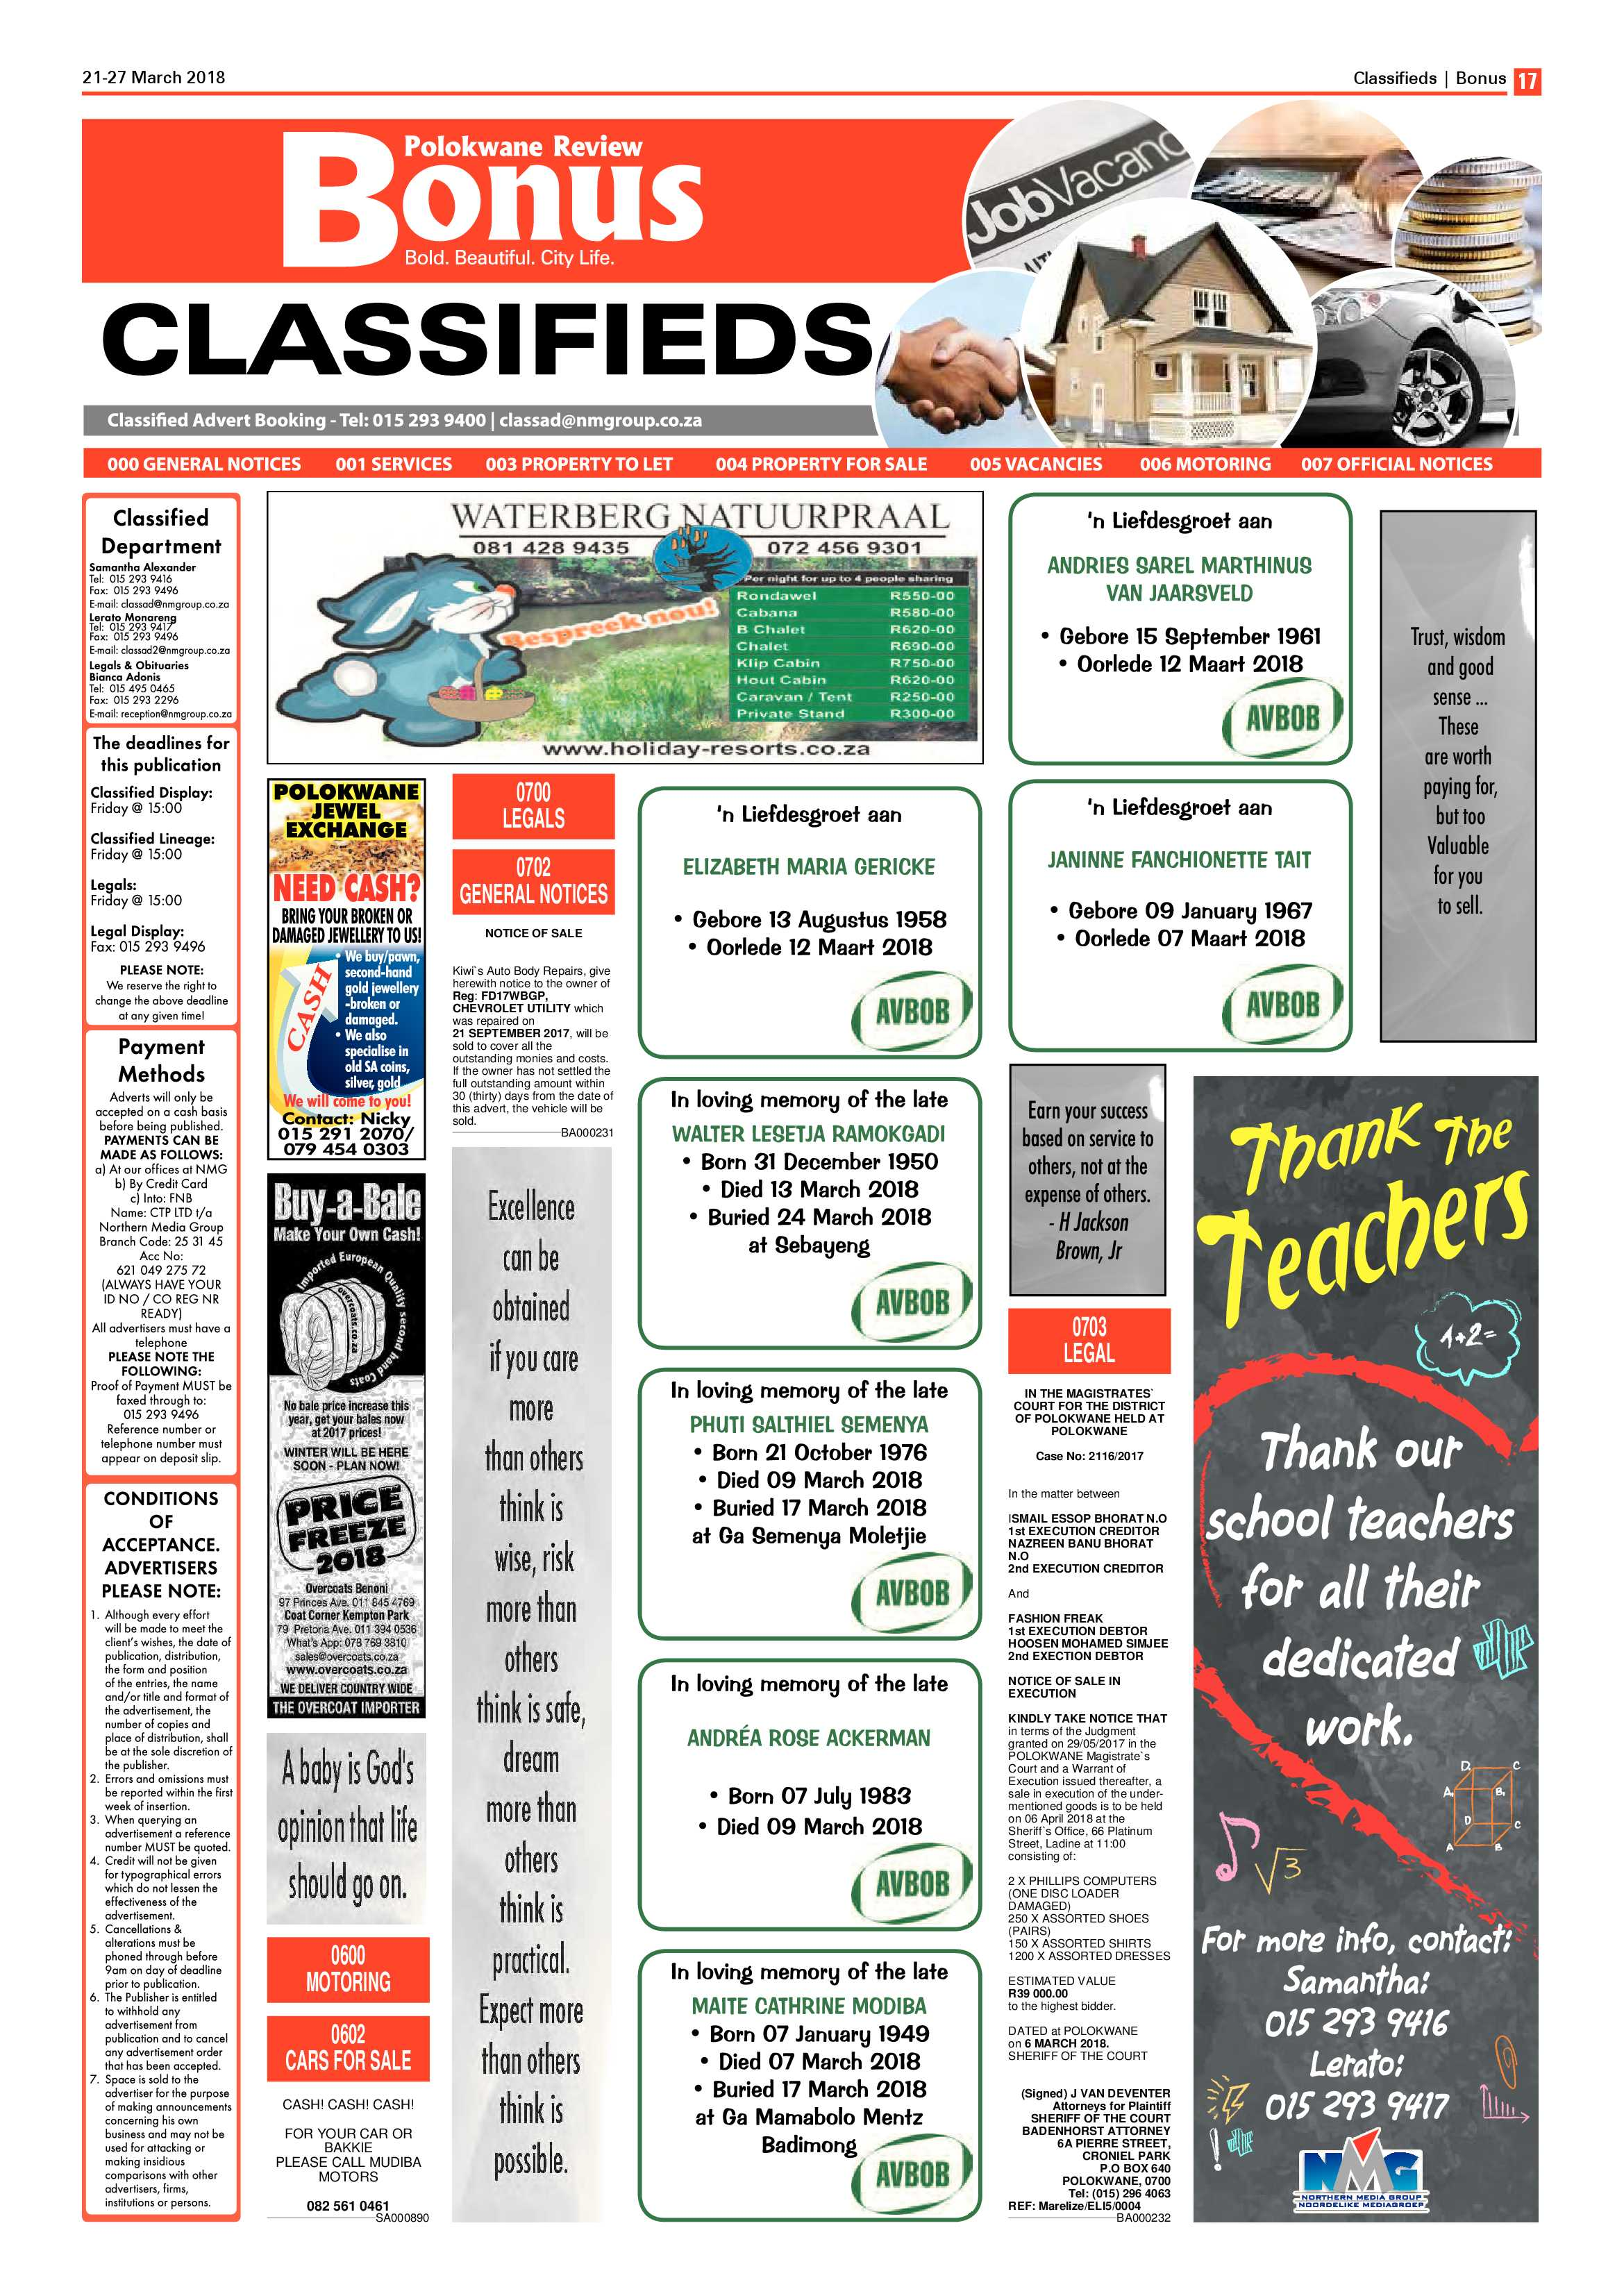 review-bonus-21-march-2018-epapers-page-17